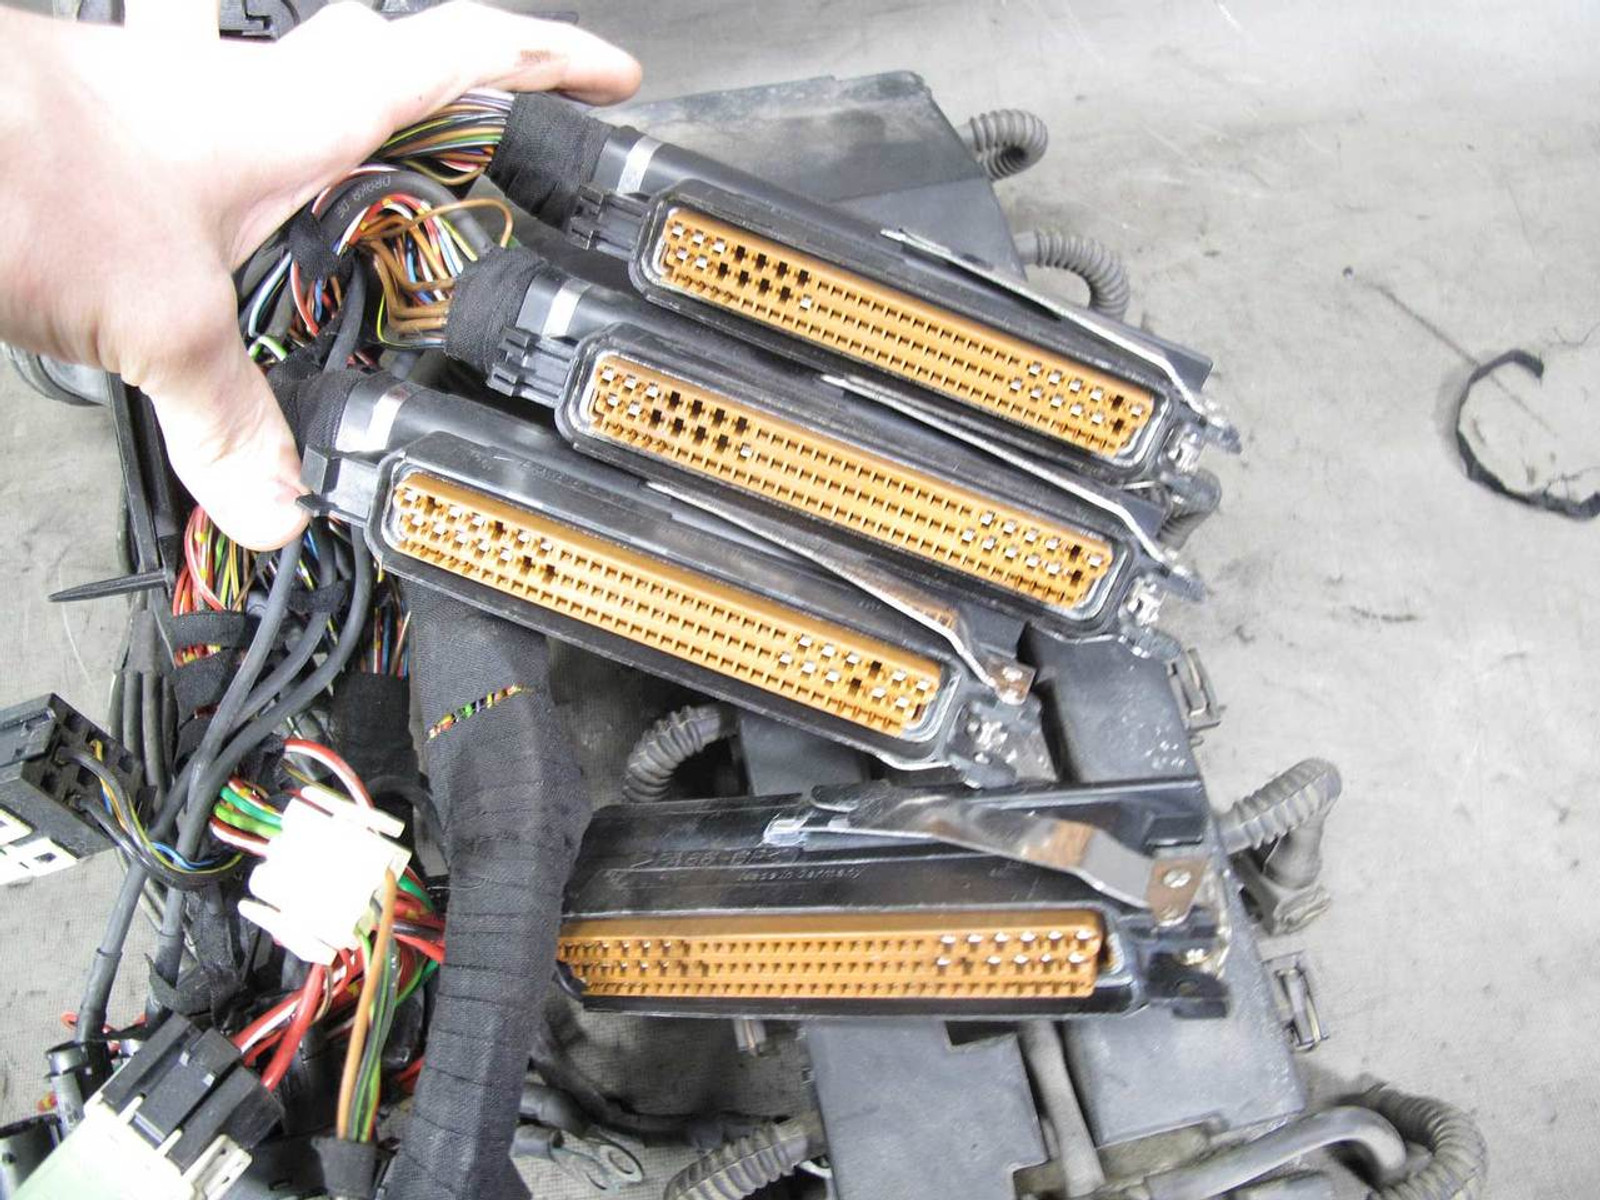 1996-1997 BMW E38 750iL M73 V12 Engine Wiring Harness Complete OEM - 20718